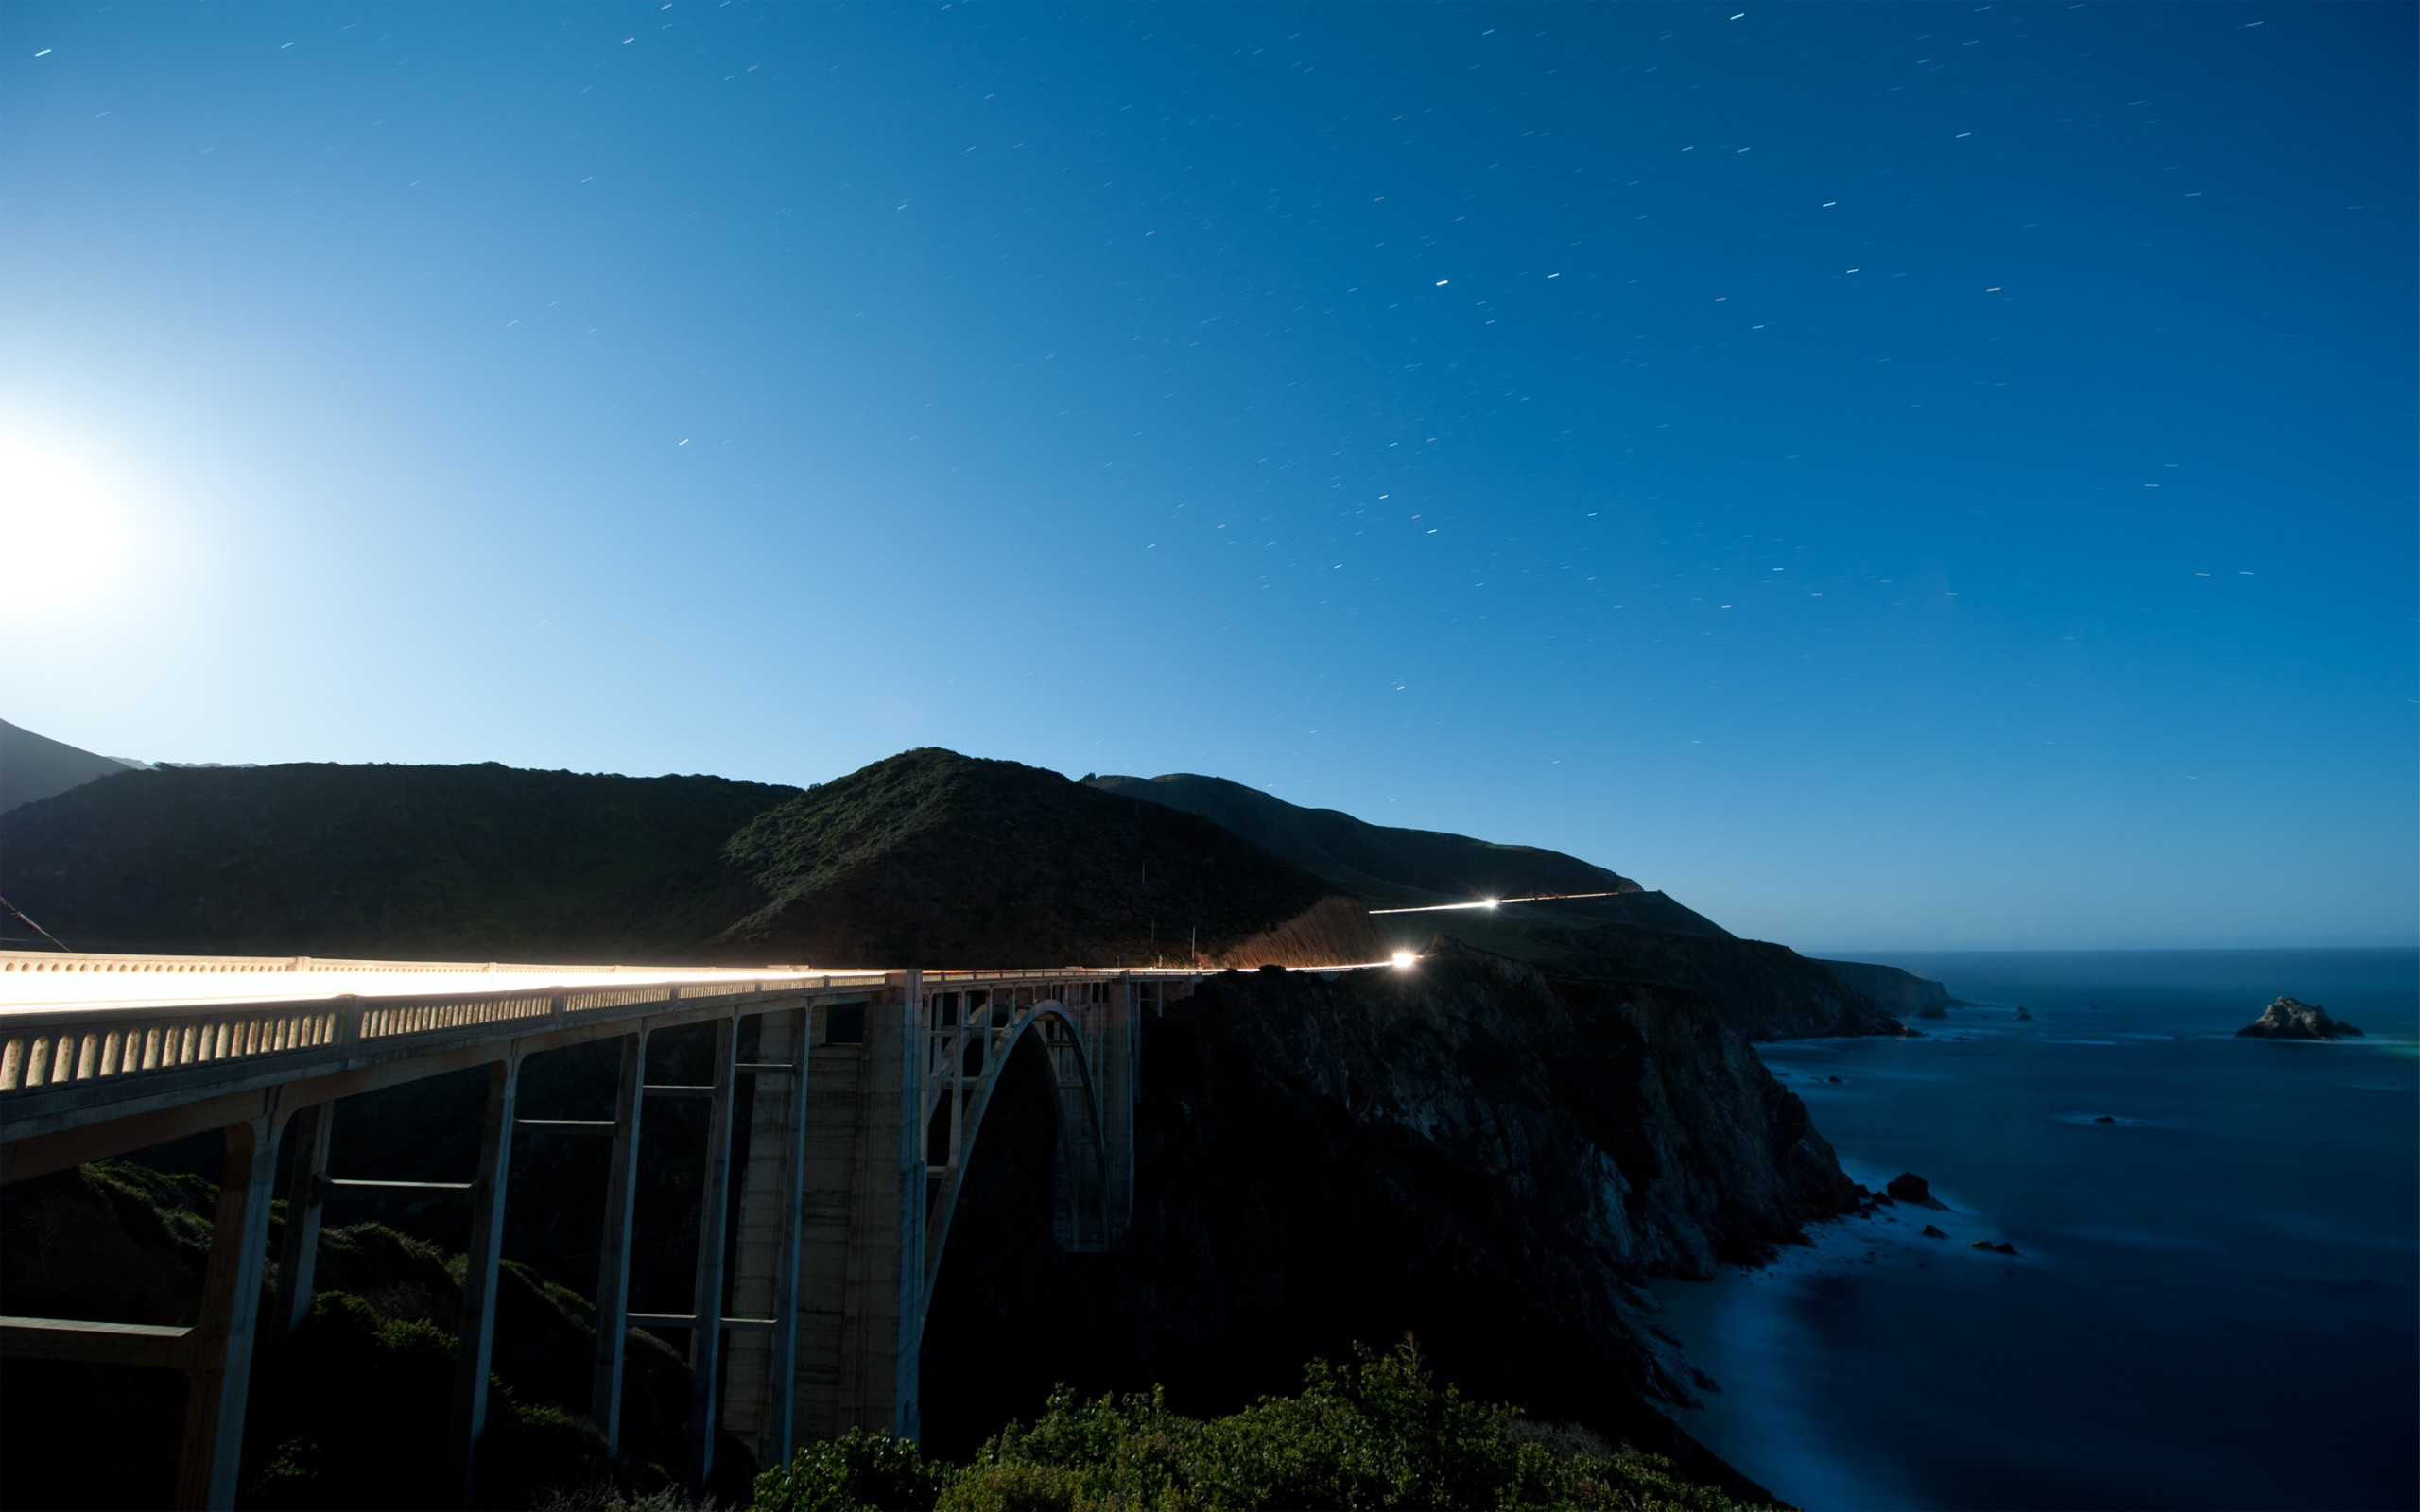 Cute Love Hd Wallpapers For Android Bixby Creek Bridge Big Sur Wallpapers Hd Wallpapers Id